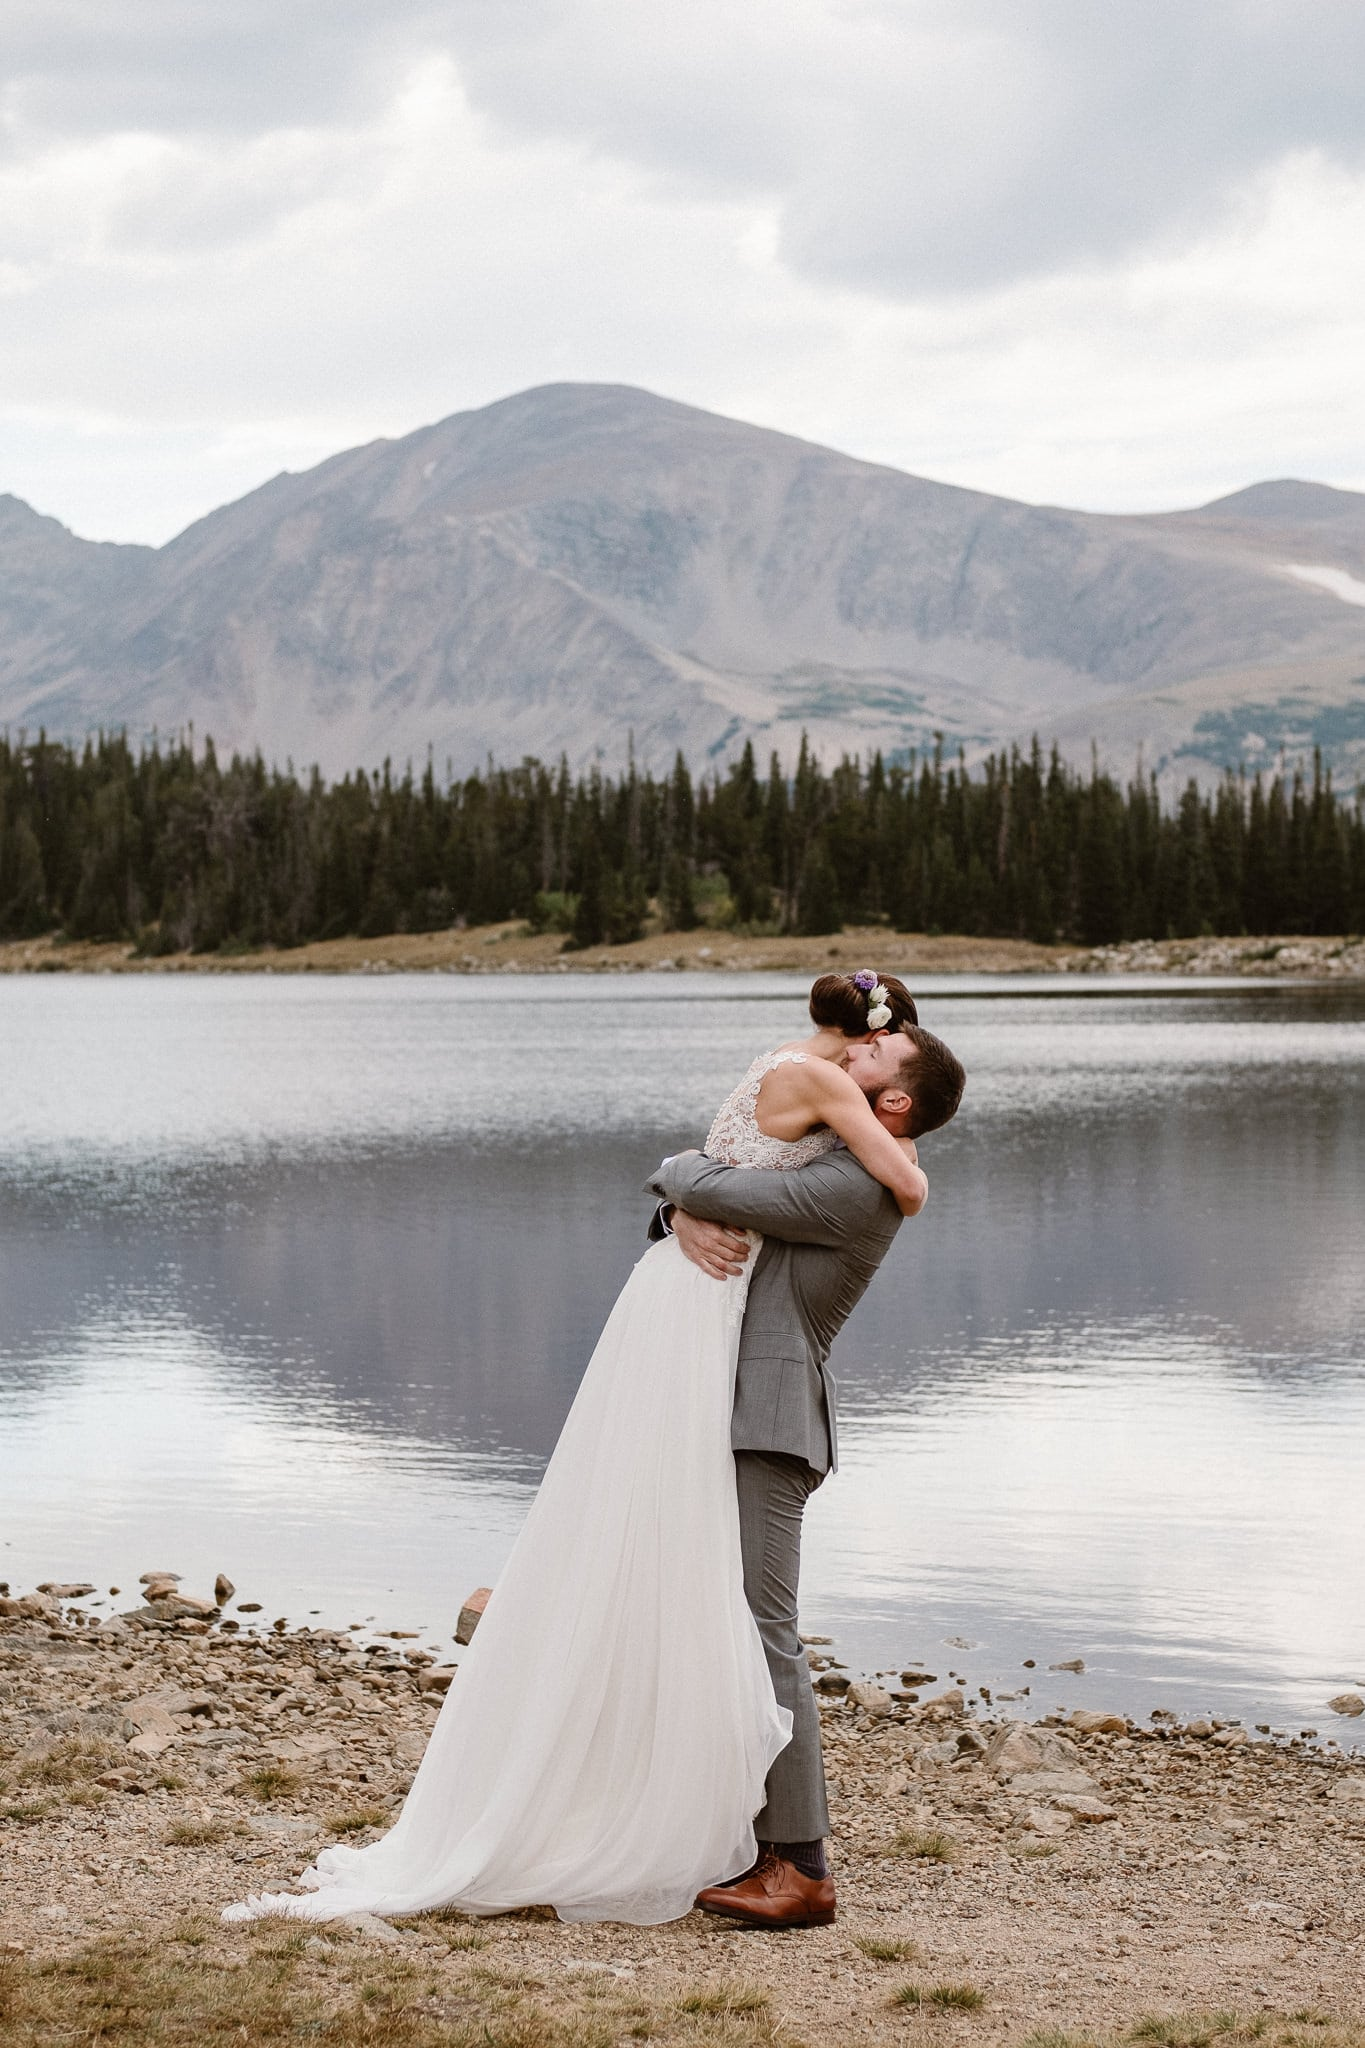 Colorado mountain elopement photographer, alpine lake adventure wedding, Boulder wedding photographer, outdoor ceremony, first kiss, groom lifting bride